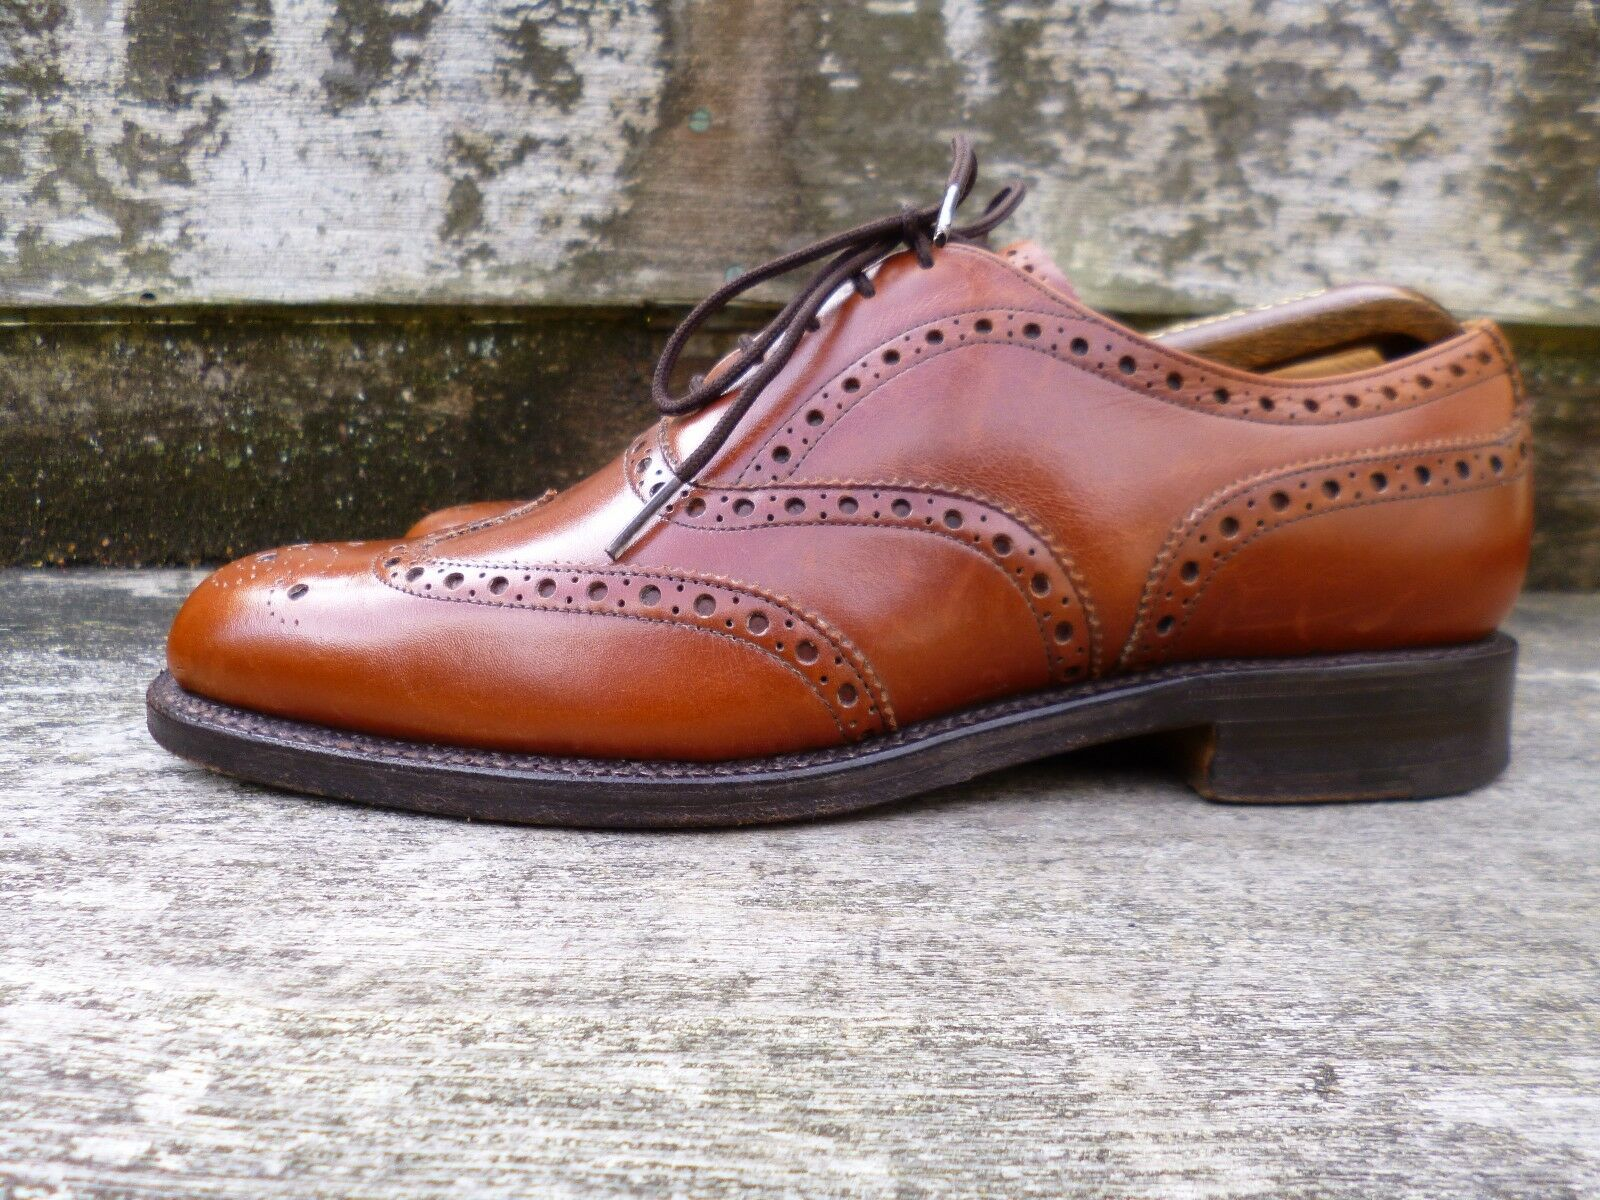 CHEANEY CHEANEY CHEANEY   CHURCH BROGUES – braun   TAN – UK 8.5 –  EXCELLENT CONDITION  b5dc79